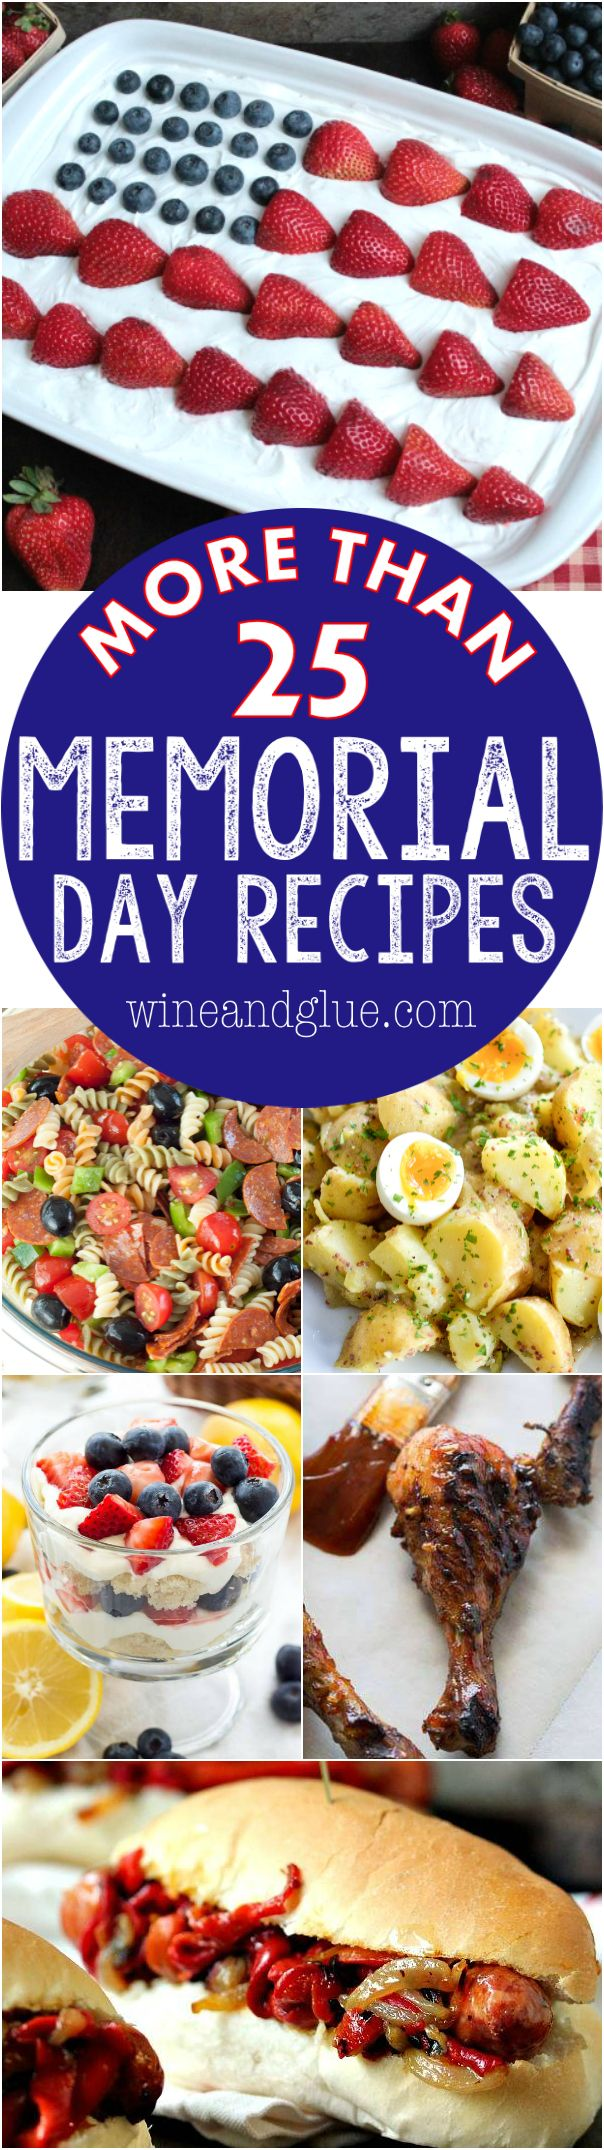 More than 25 Memorial Day Recipes to start your summer off right!